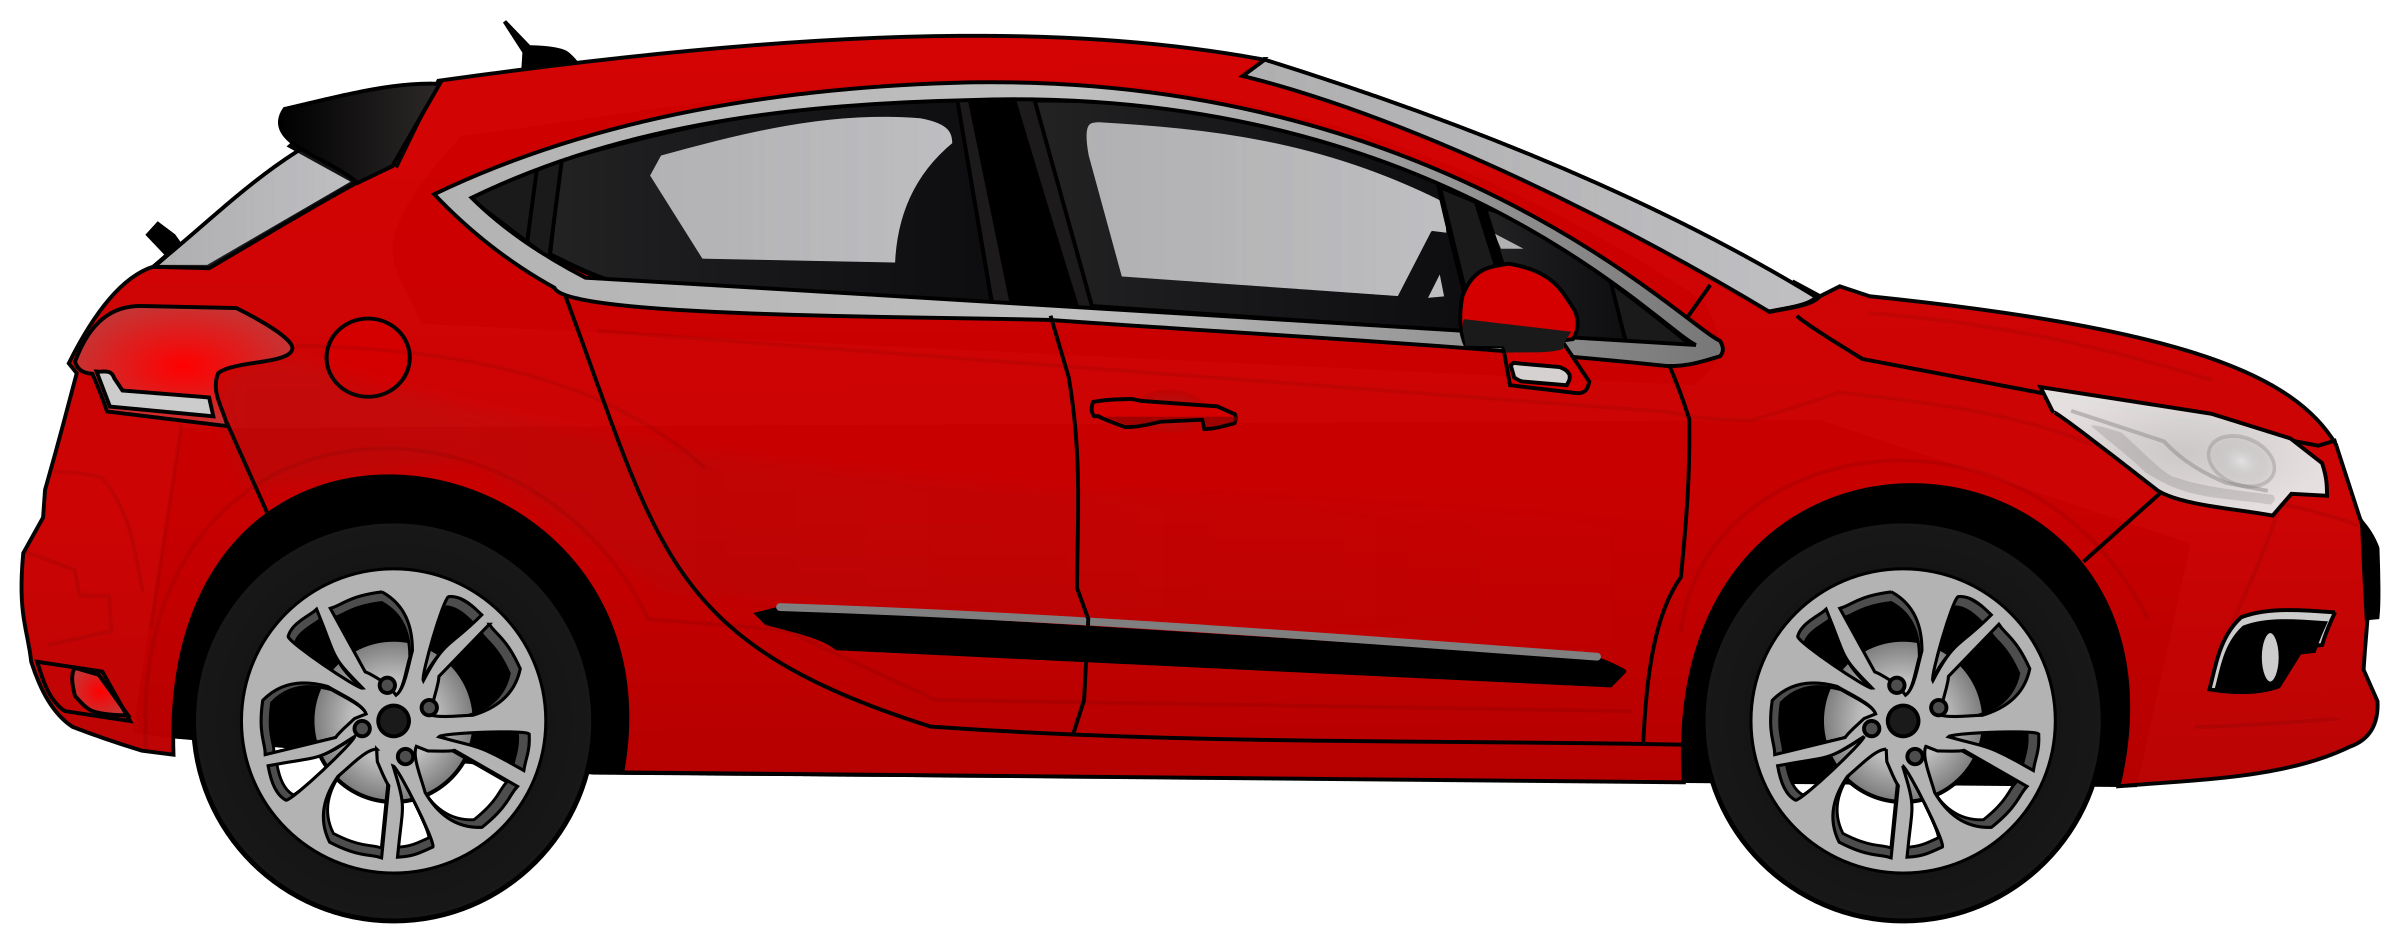 Car png clipart. Collection of image